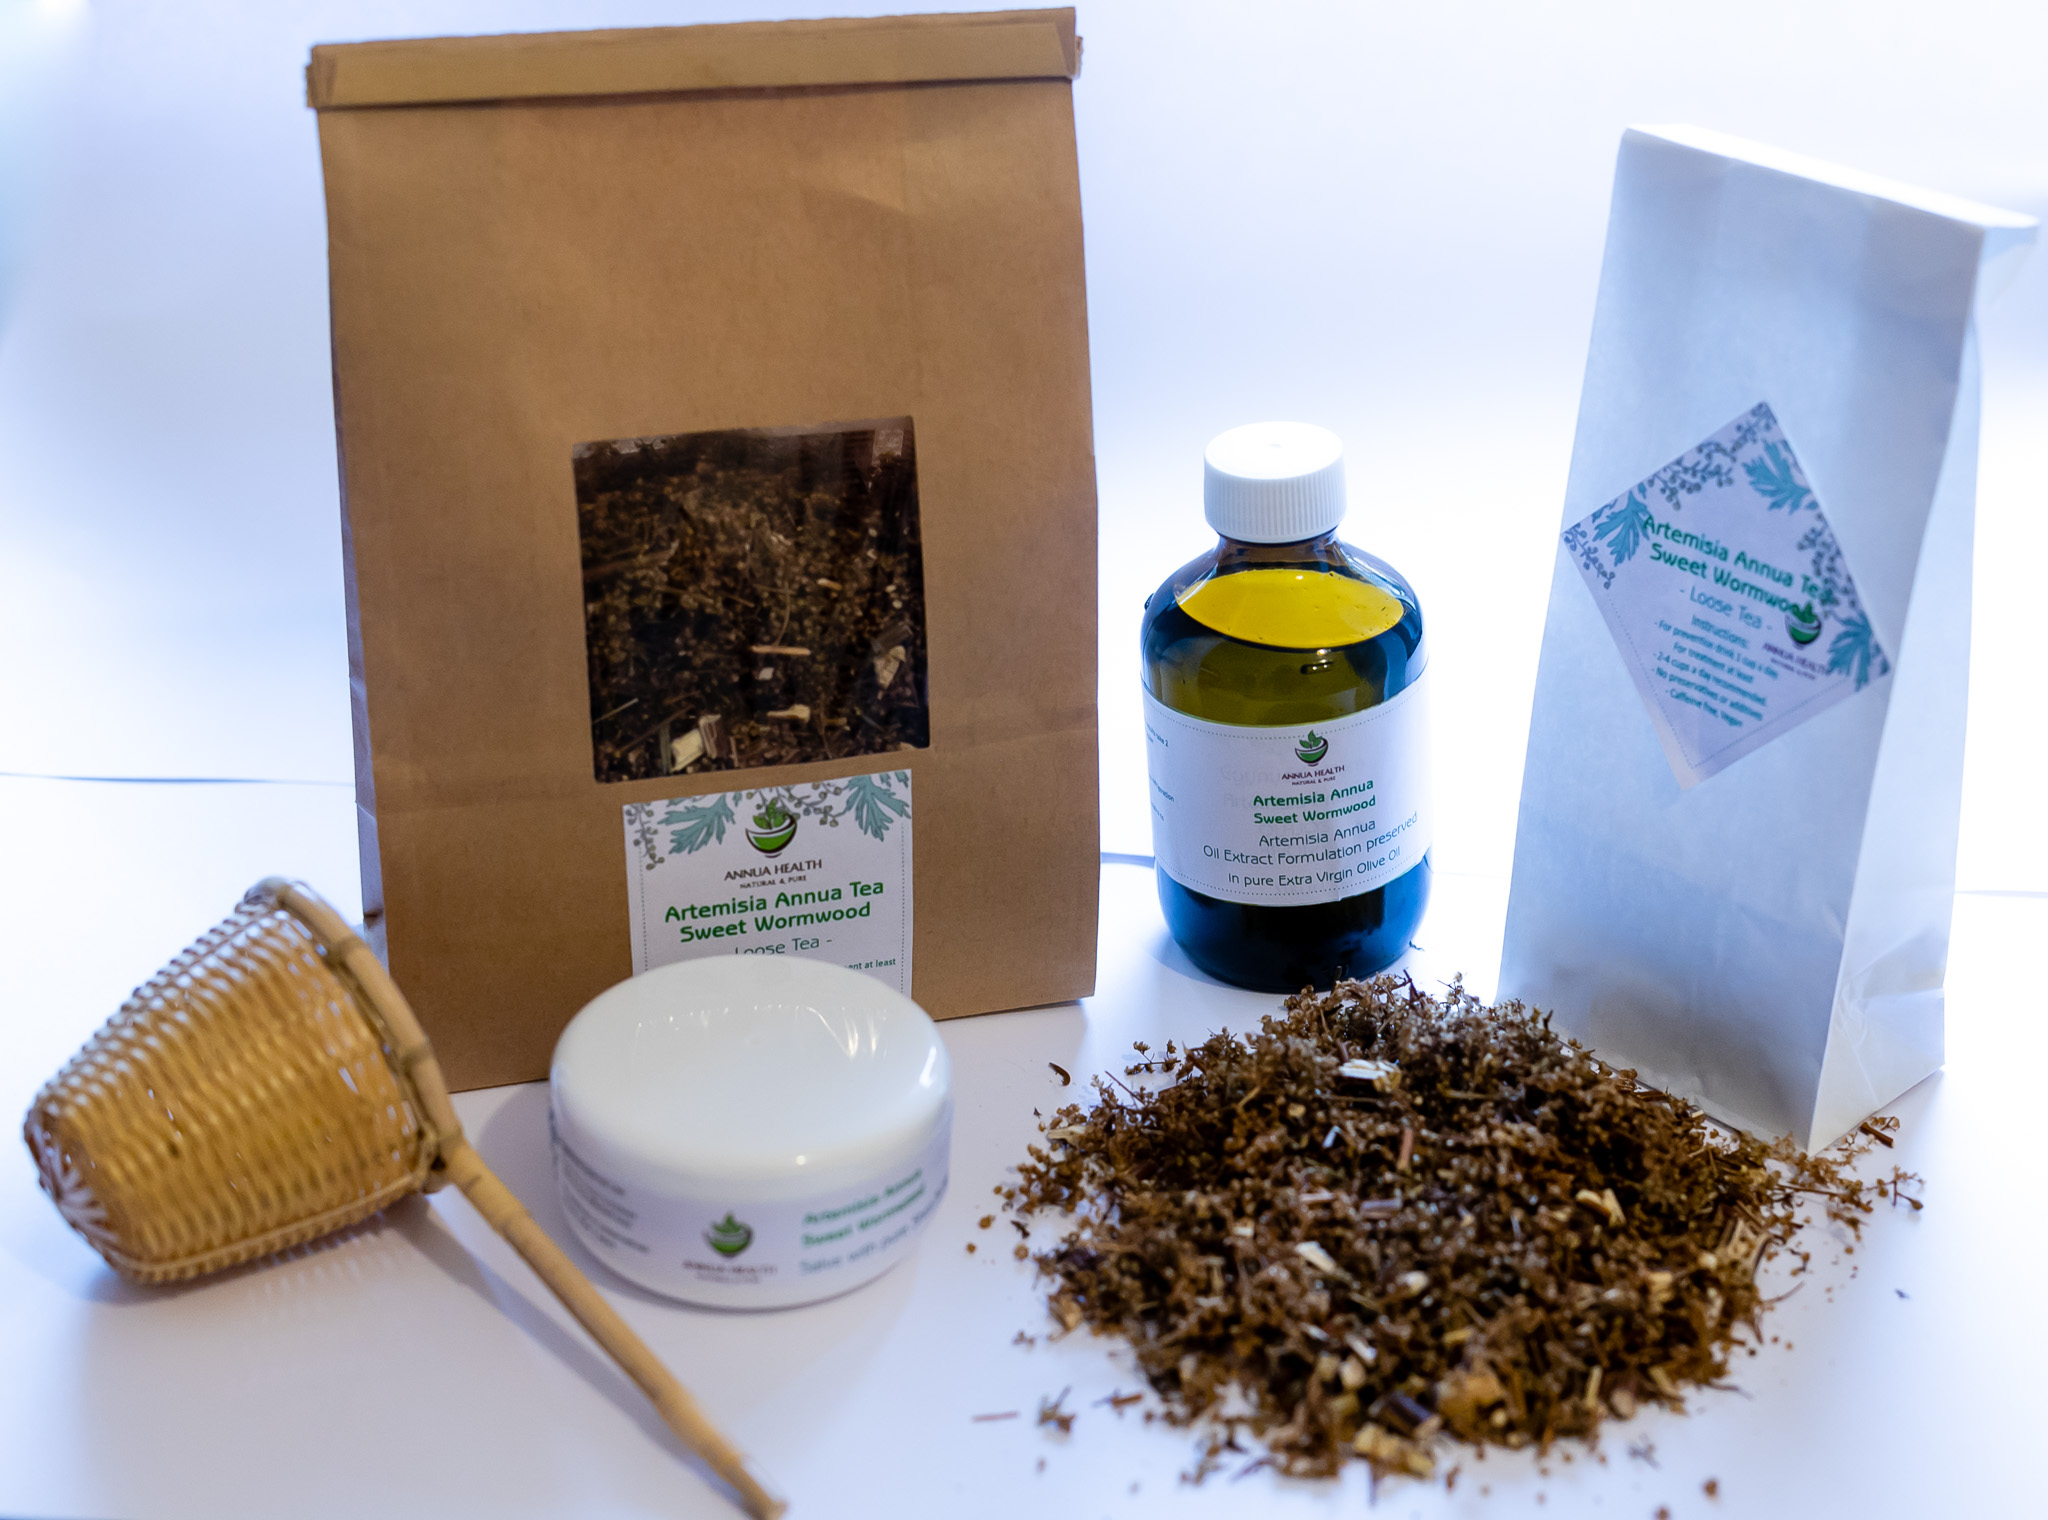 Artemisia Annua Tea Products